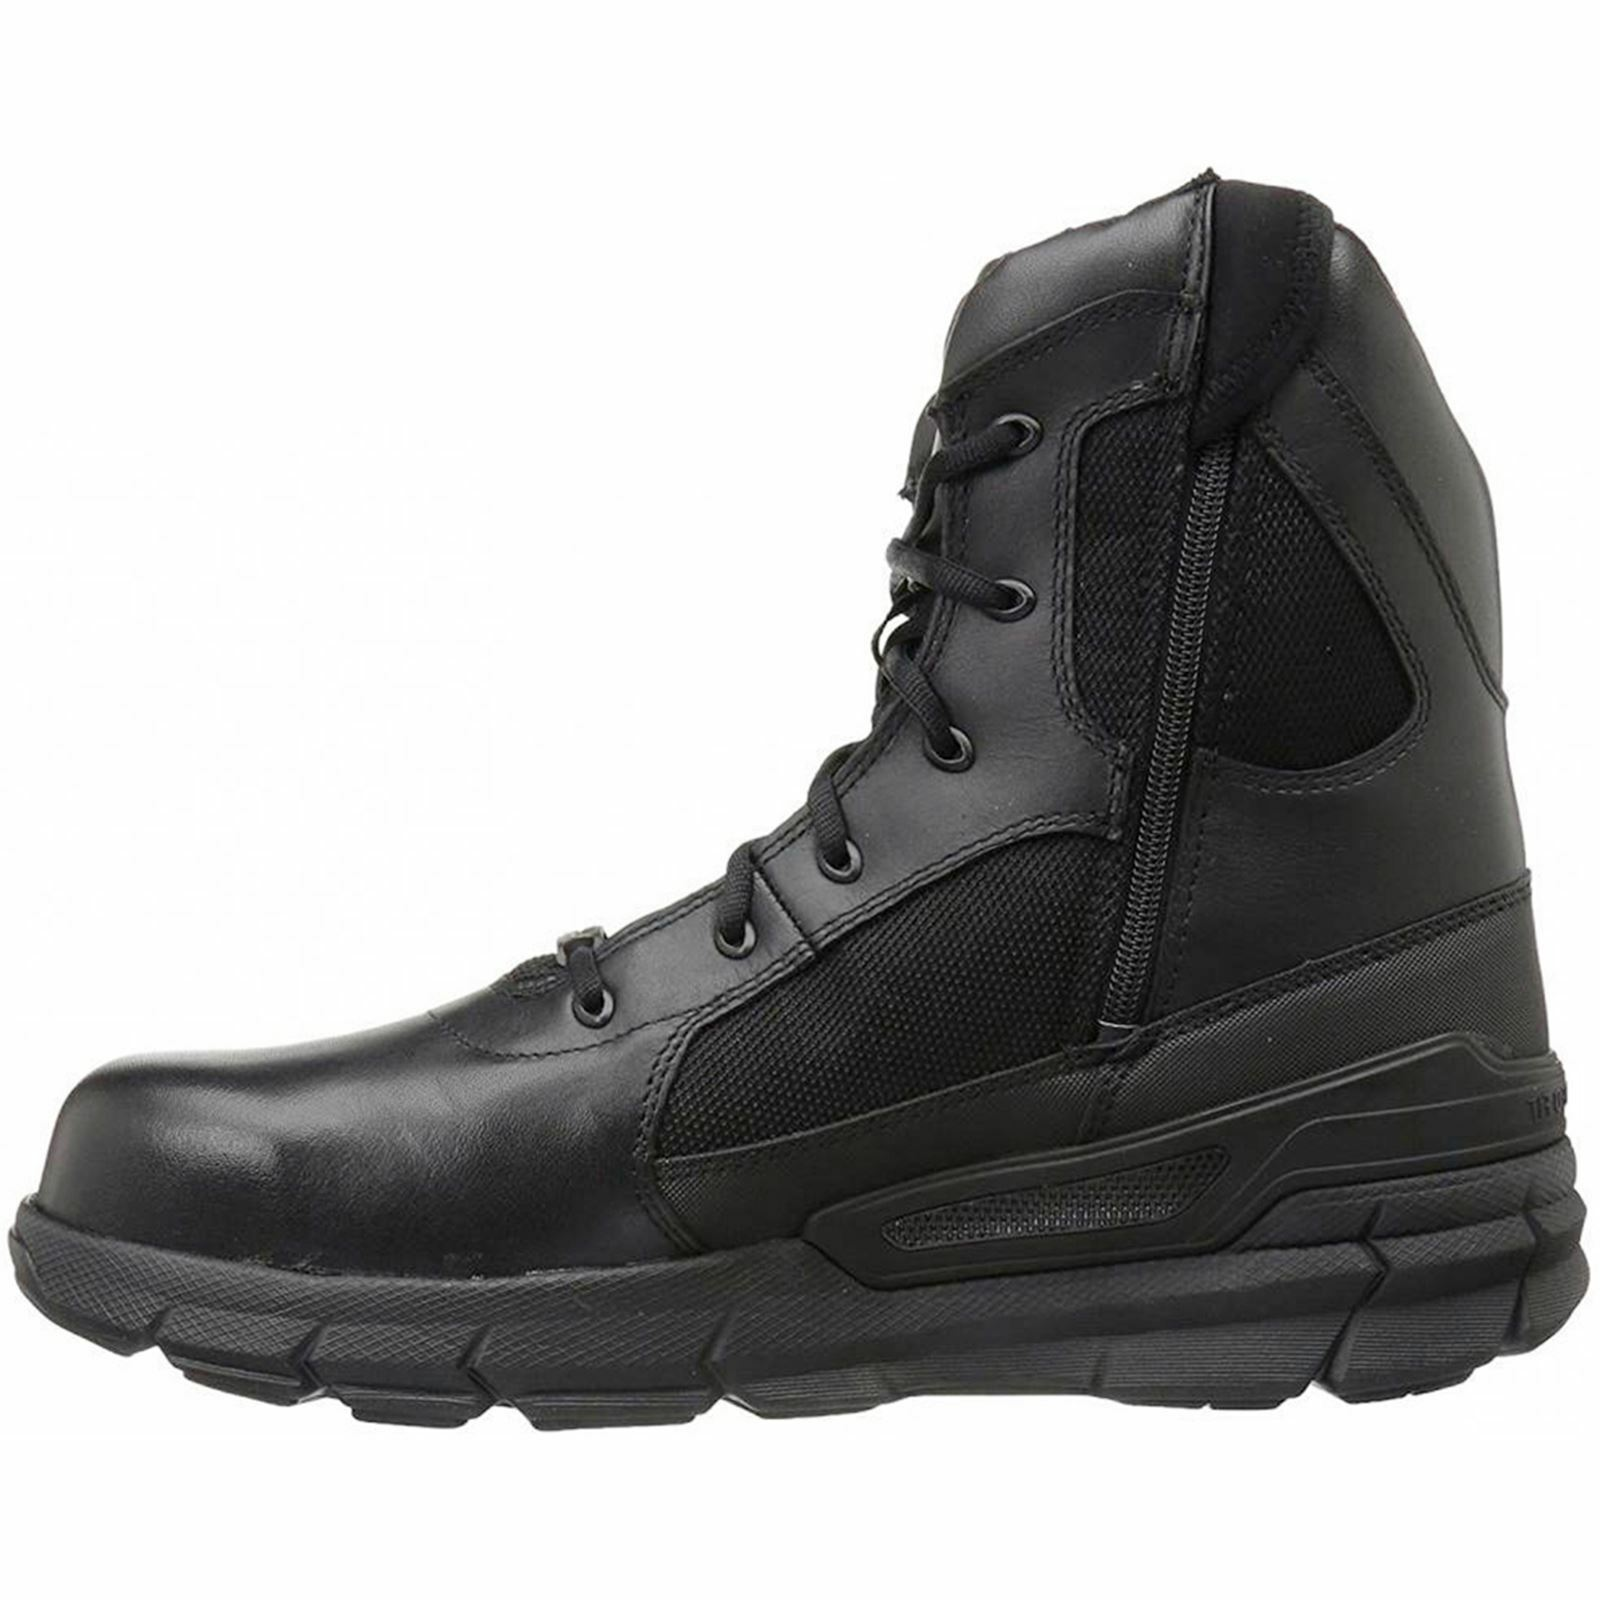 Bates Zip Charge Composite Toe Side Zip Bates Black Mens Leather Military Tactical Boots 8dc20a